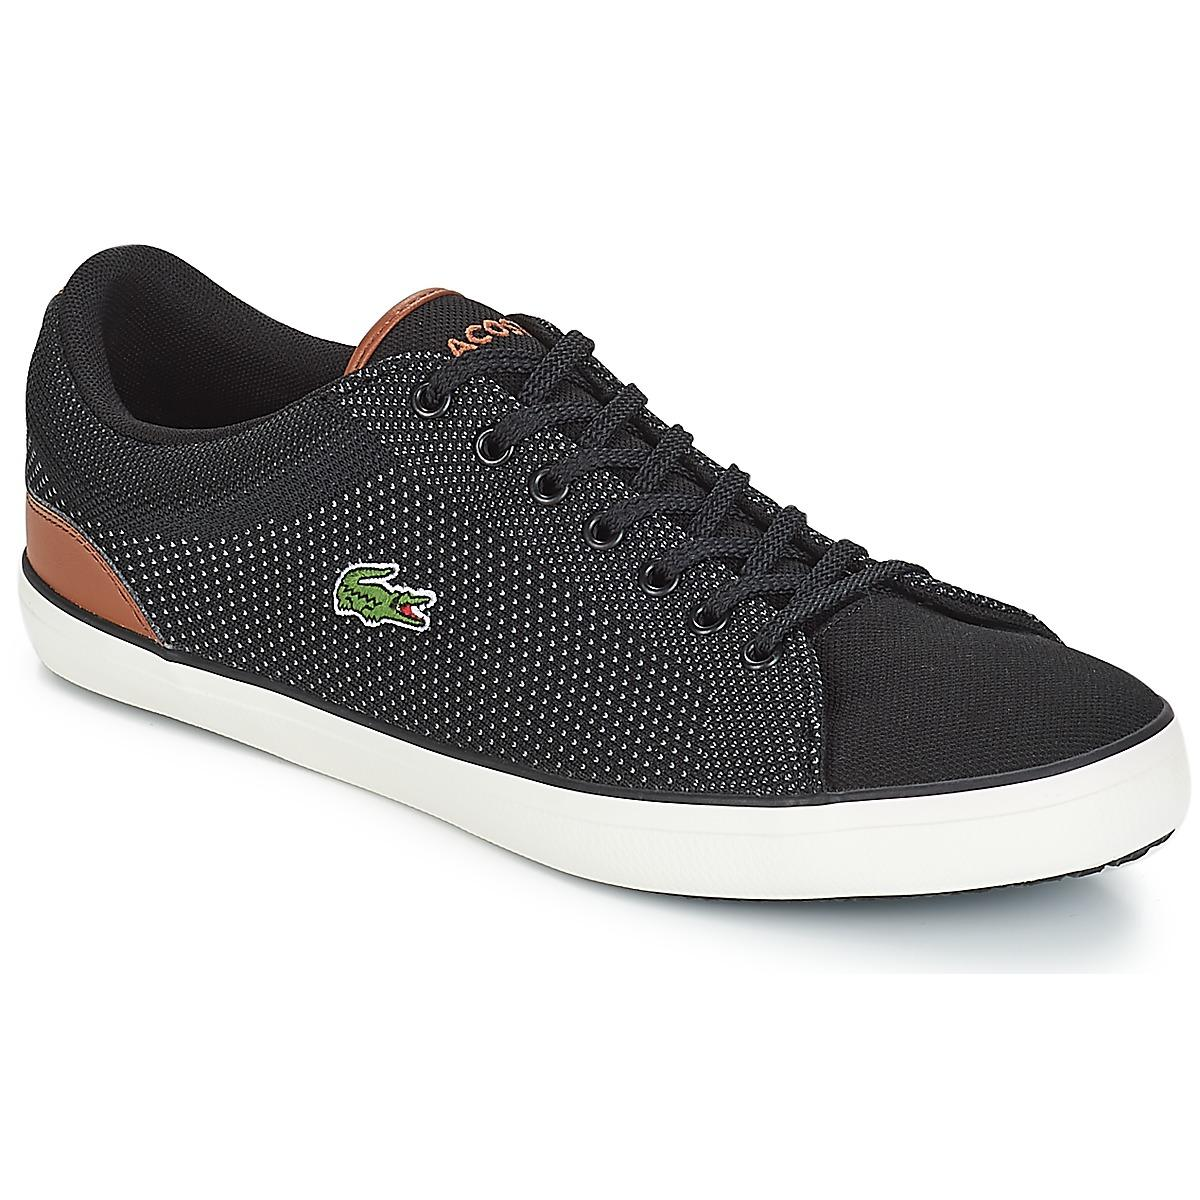 11dc17c75 Lacoste Lerond 318 1 Shoes (trainers) in Black for Men - Lyst